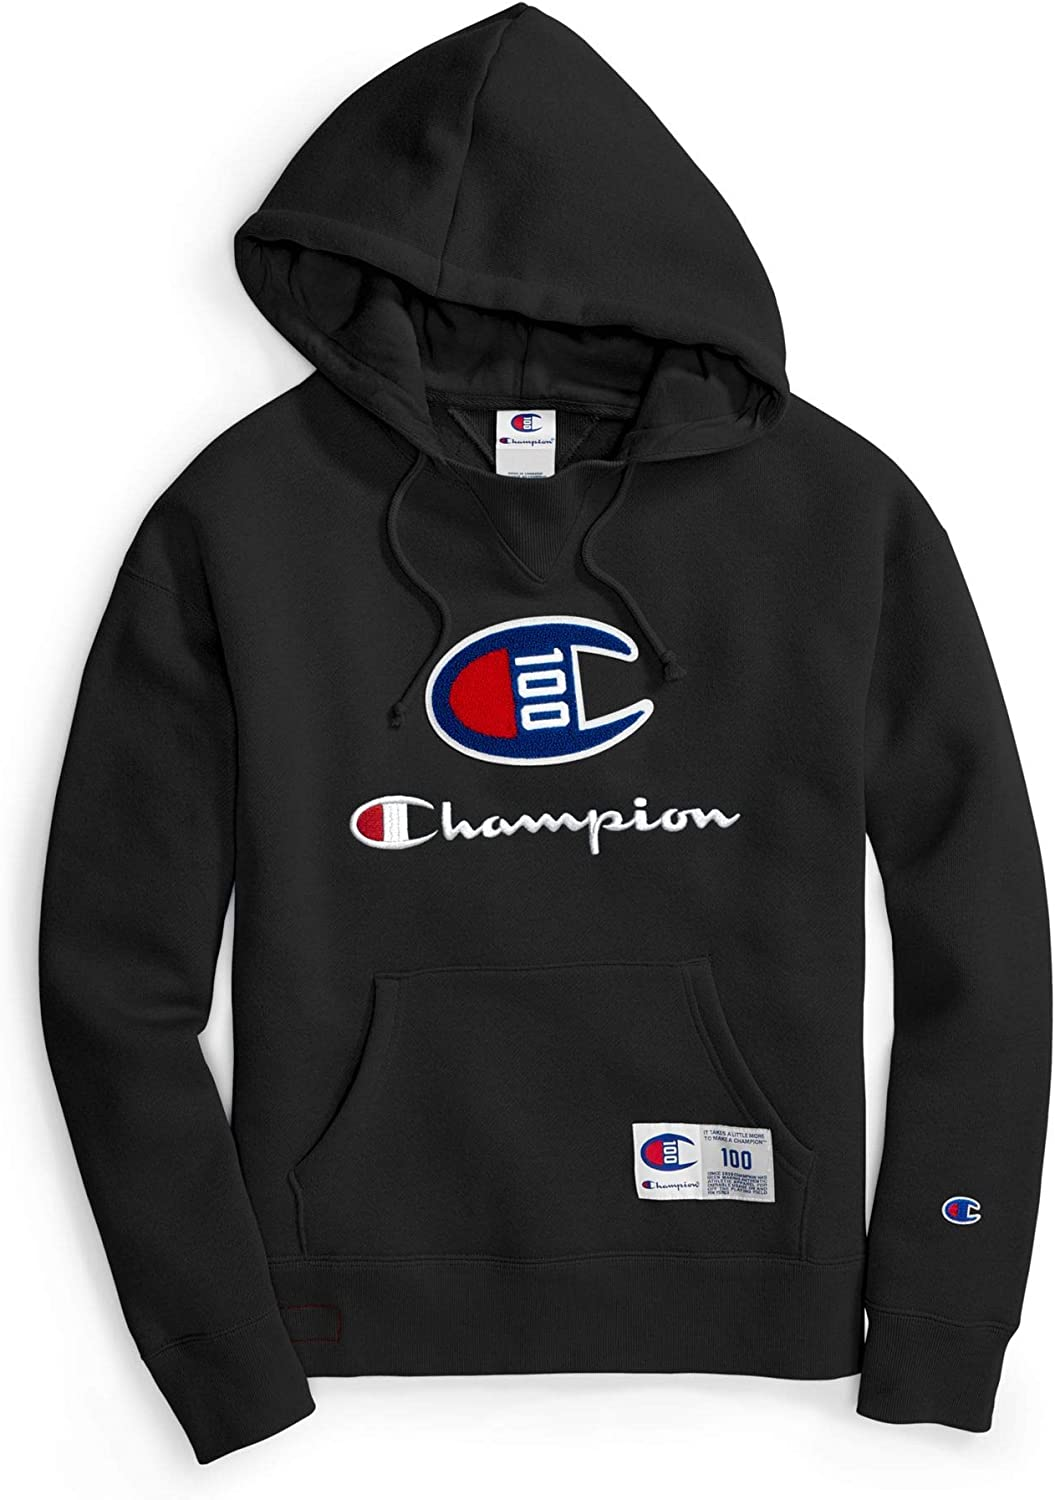 Champion Women's Limited Special Price Century Financial sales sale Hoodie